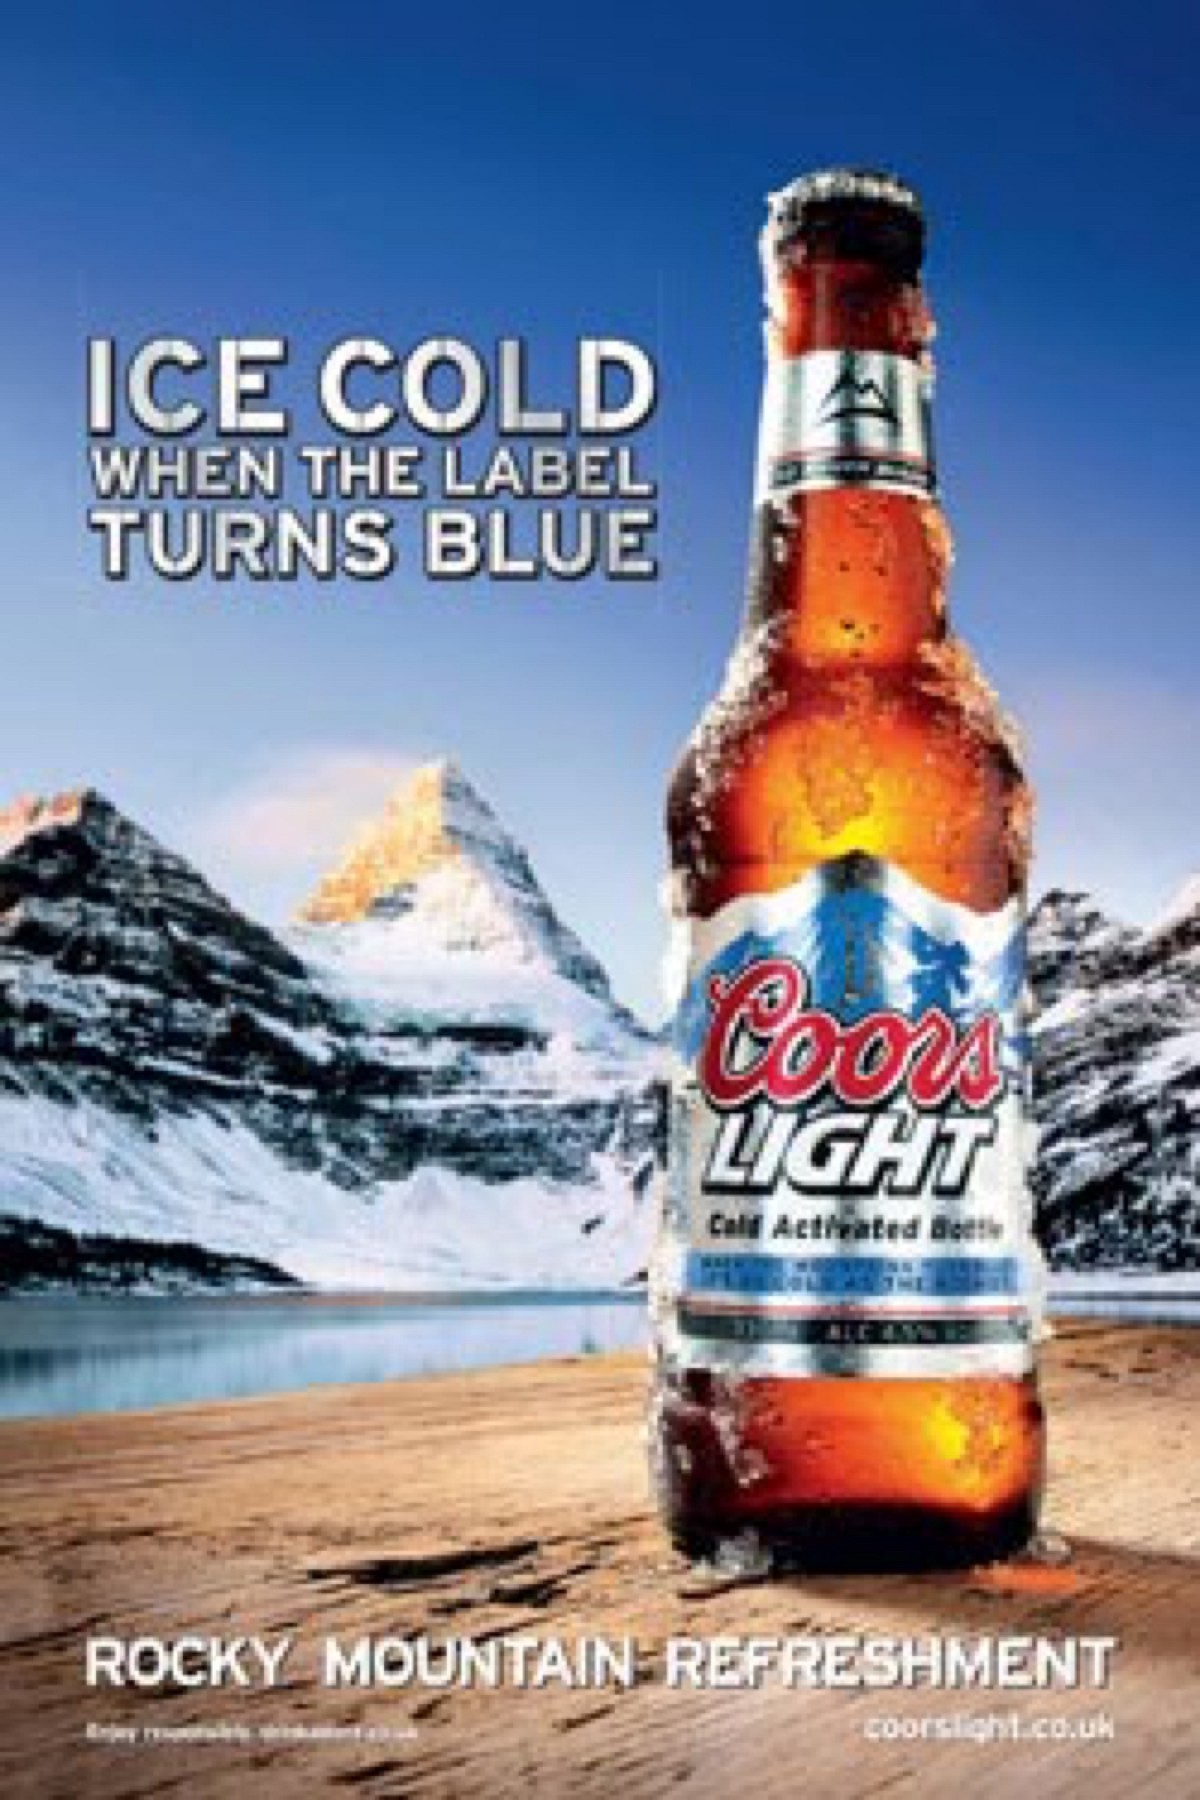 this advertisement is for the ice cold coors light beer